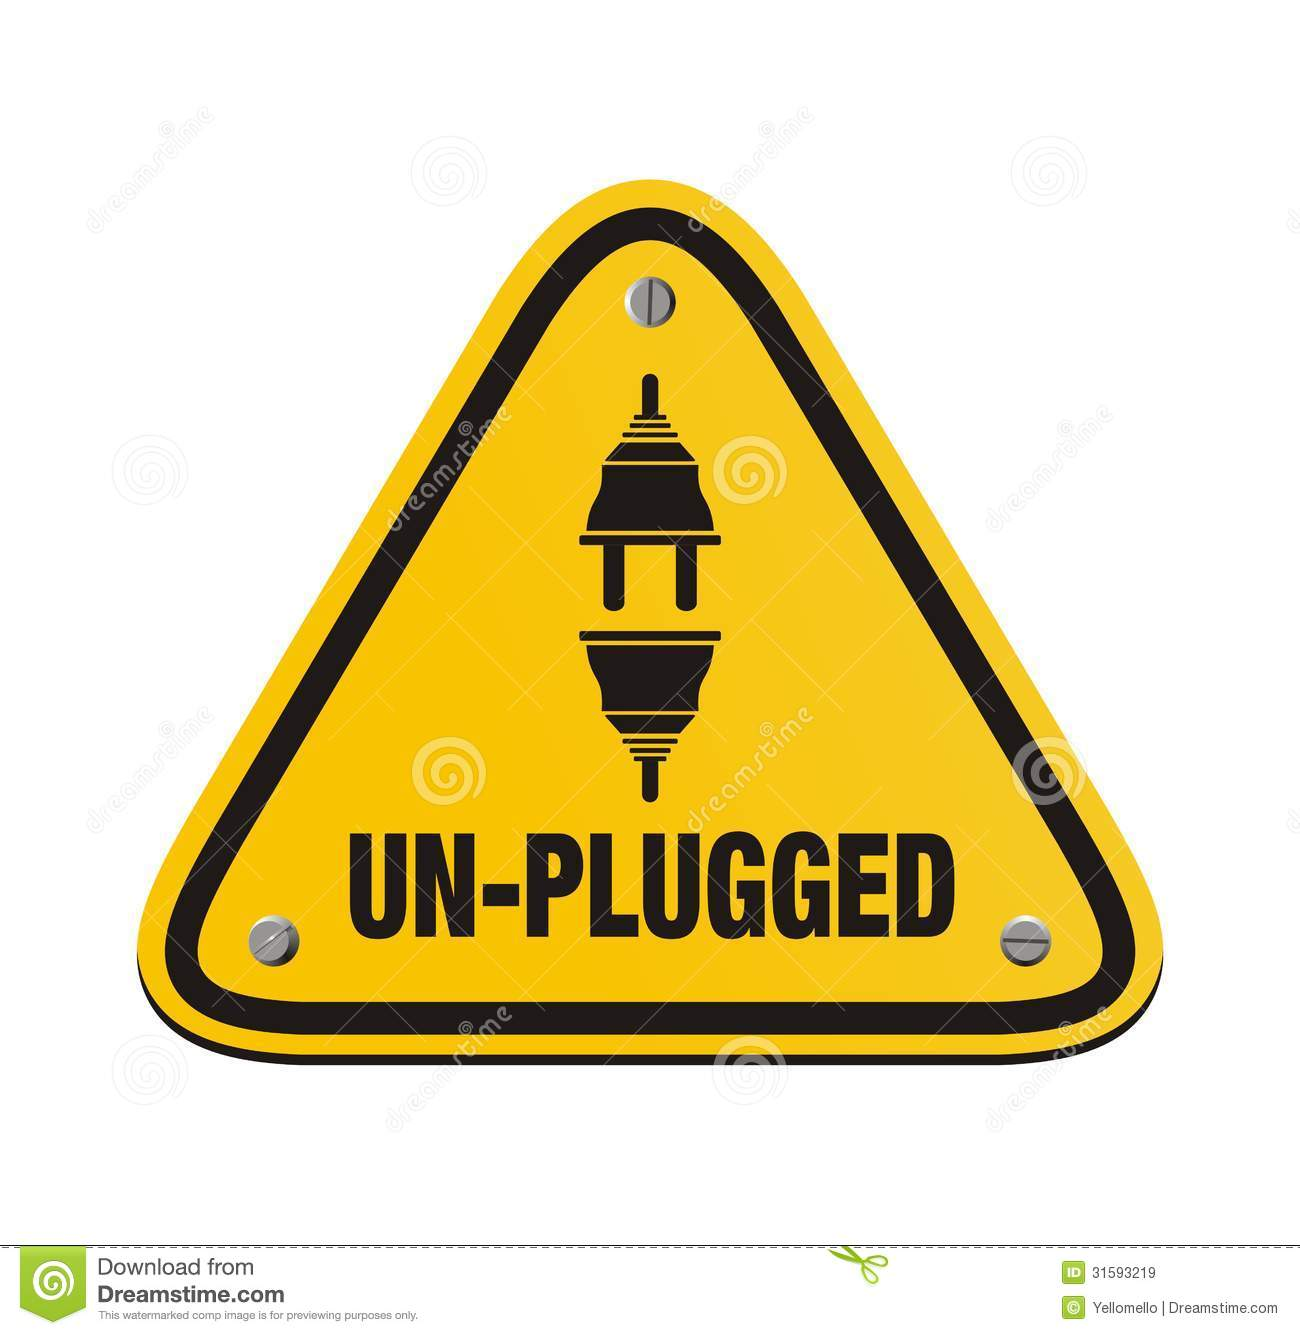 Unplugged Triangle Signs Royalty Free Stock Images - Image: 31593219